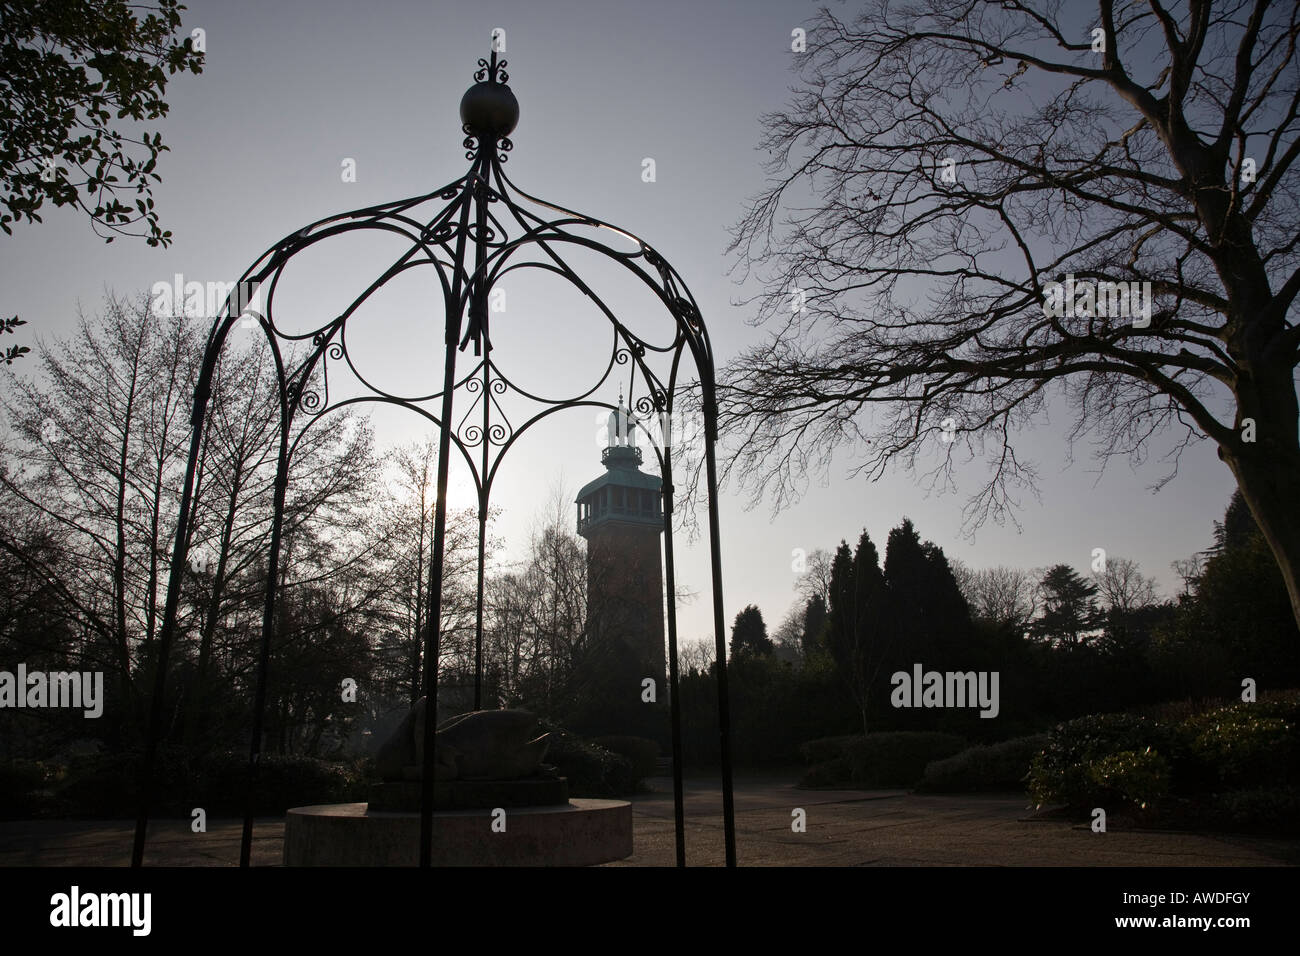 A Wrought Iron Pergola Covers Statue With The Carillon Bell Tower Silohuetted In Background Loughborough England